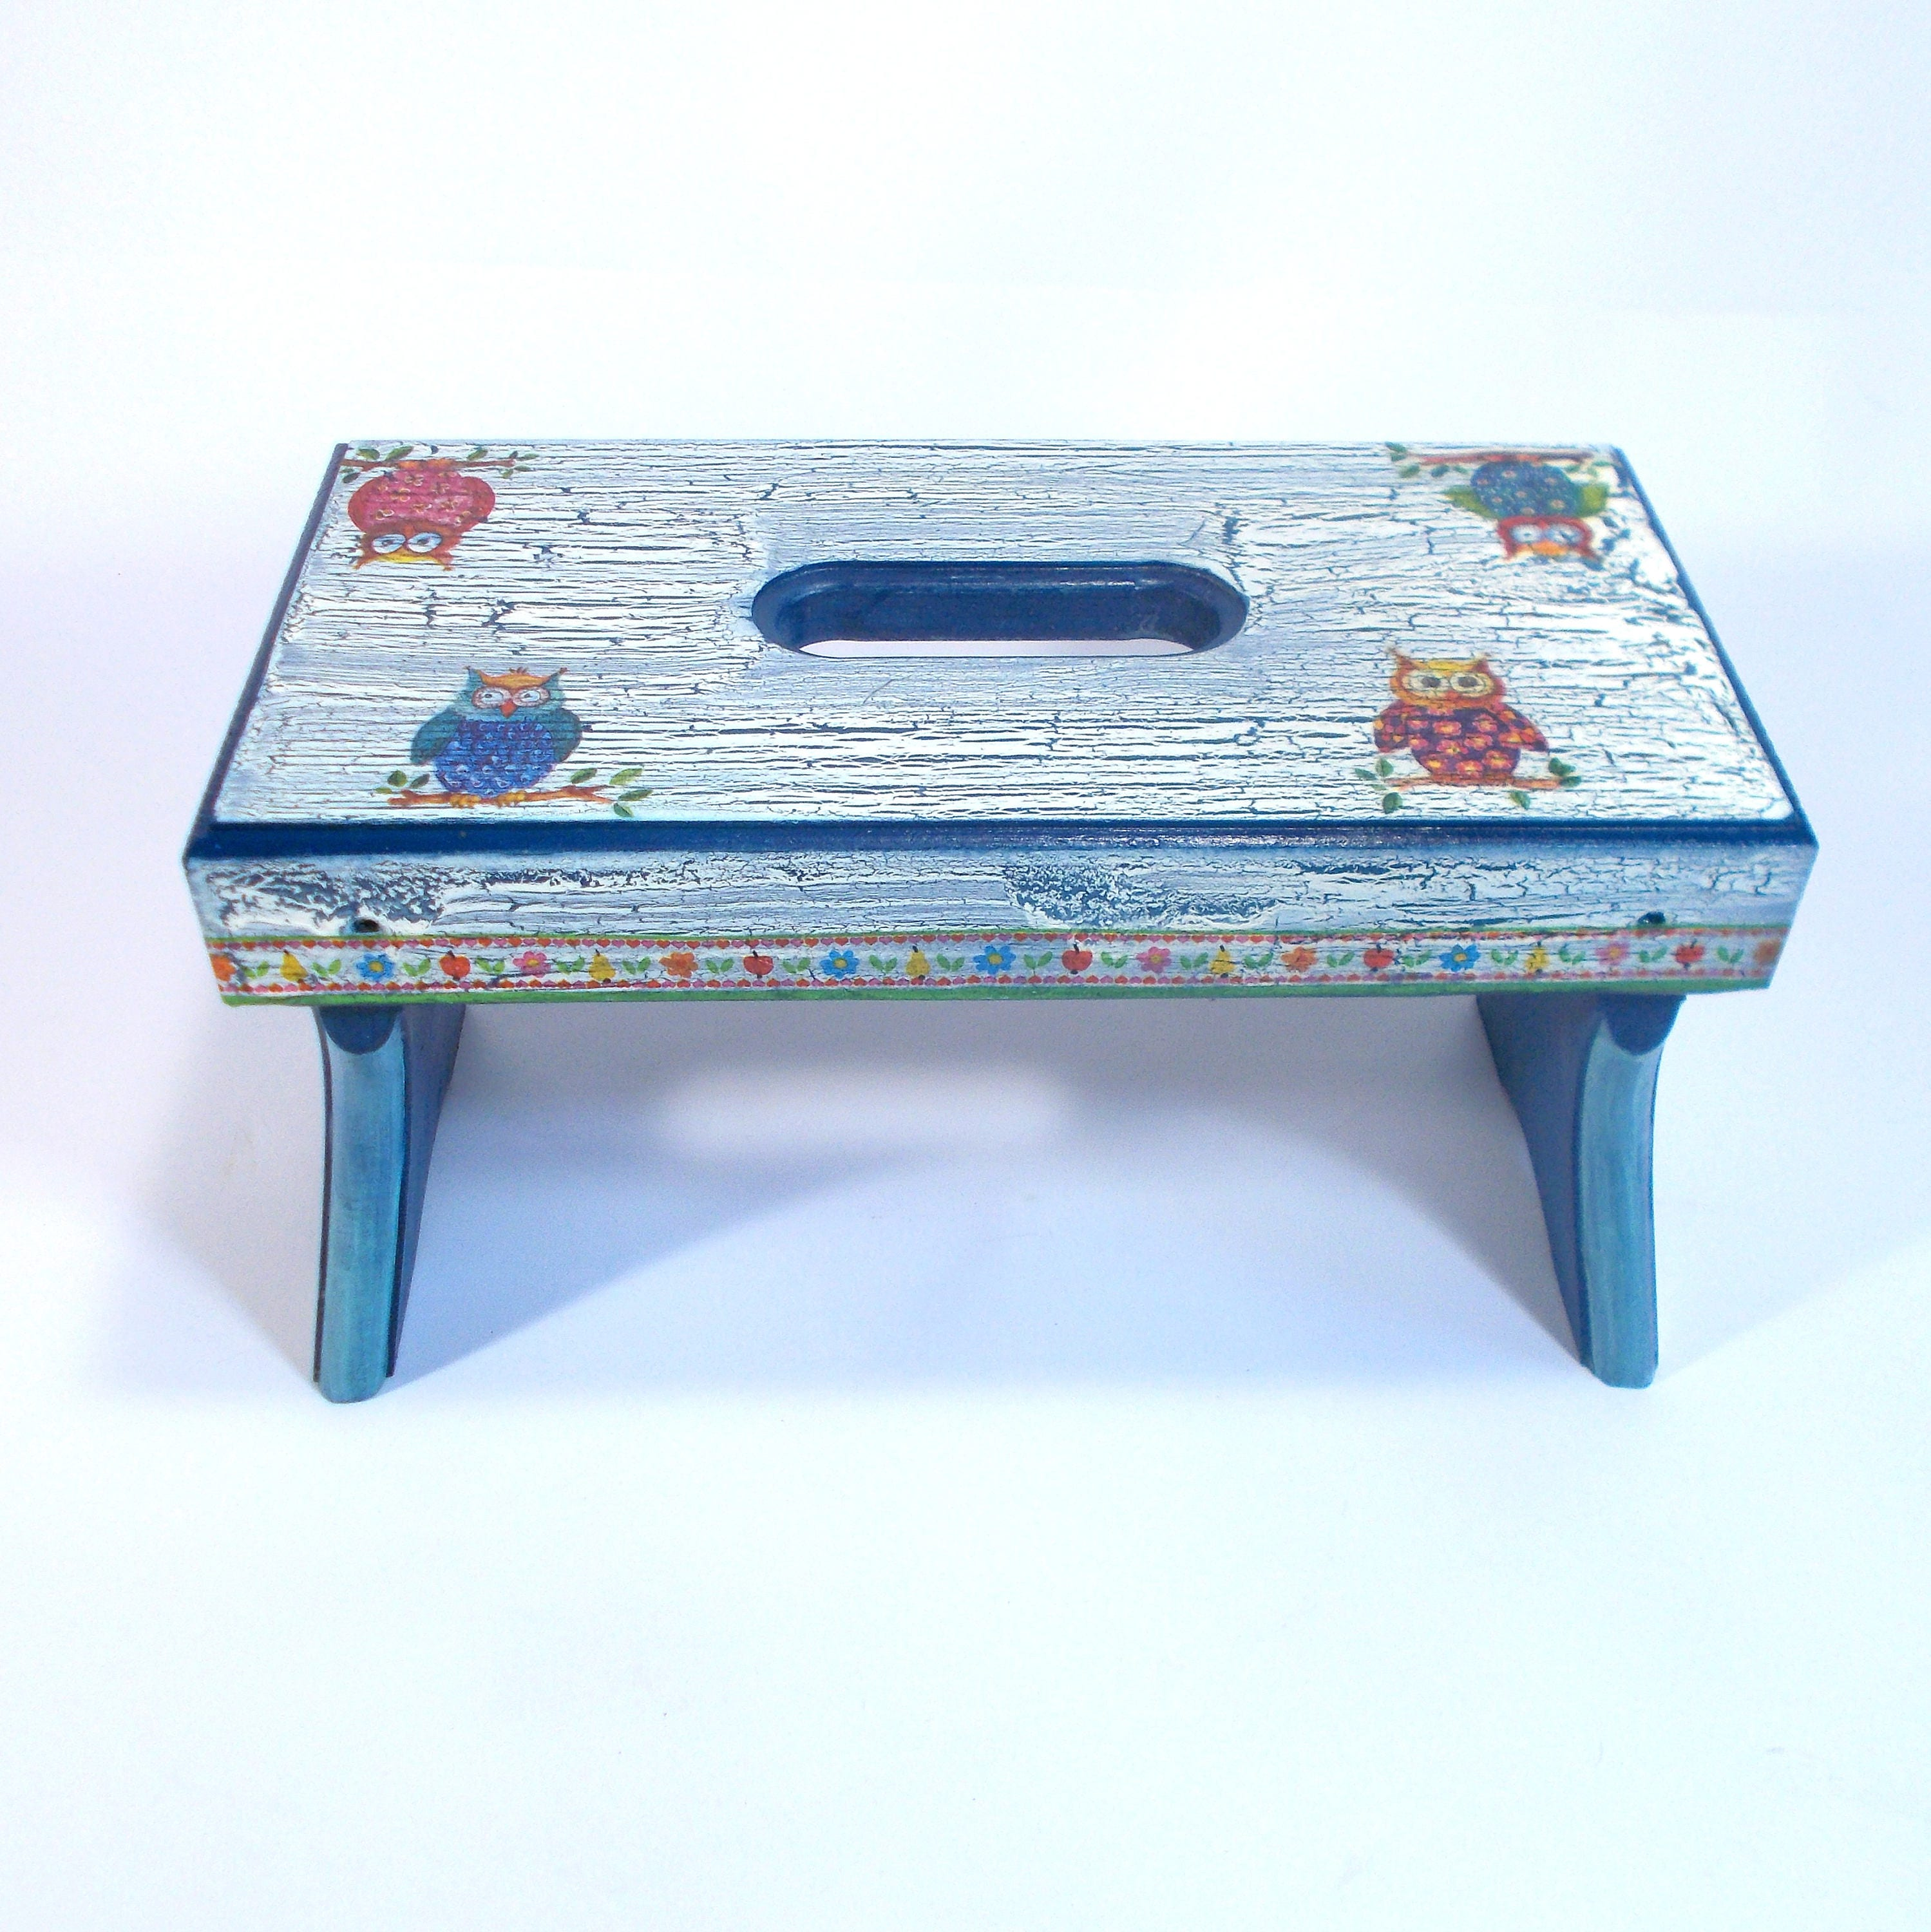 Decoupage wooden footstool bench bathroom stool for